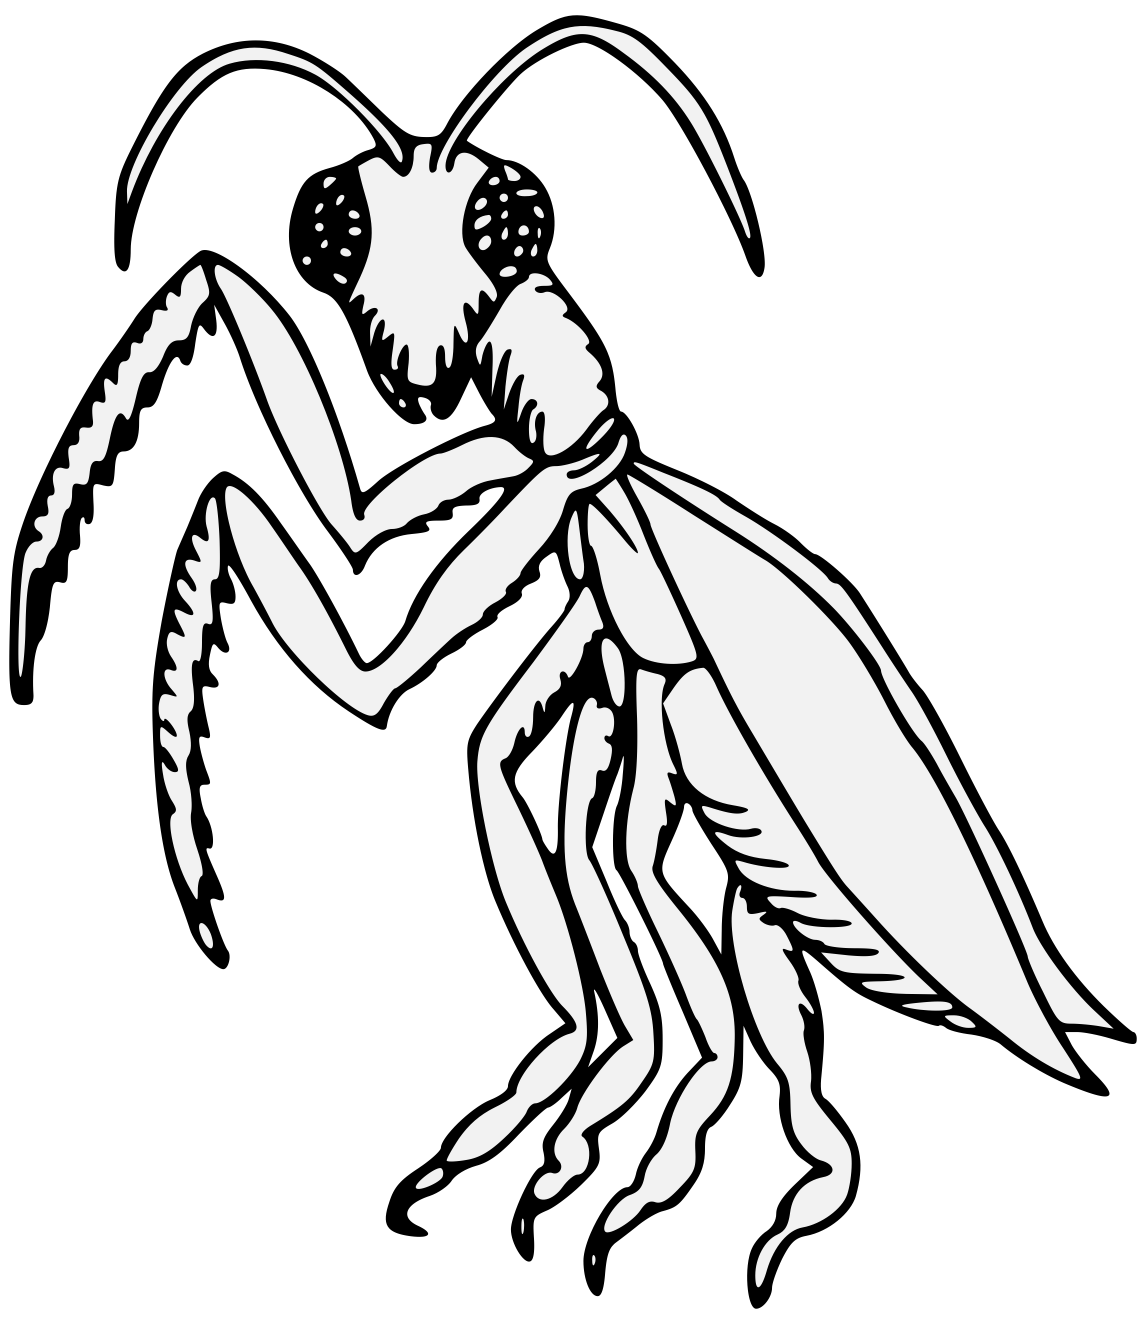 Gamora drawing line. Clip art insect illustration